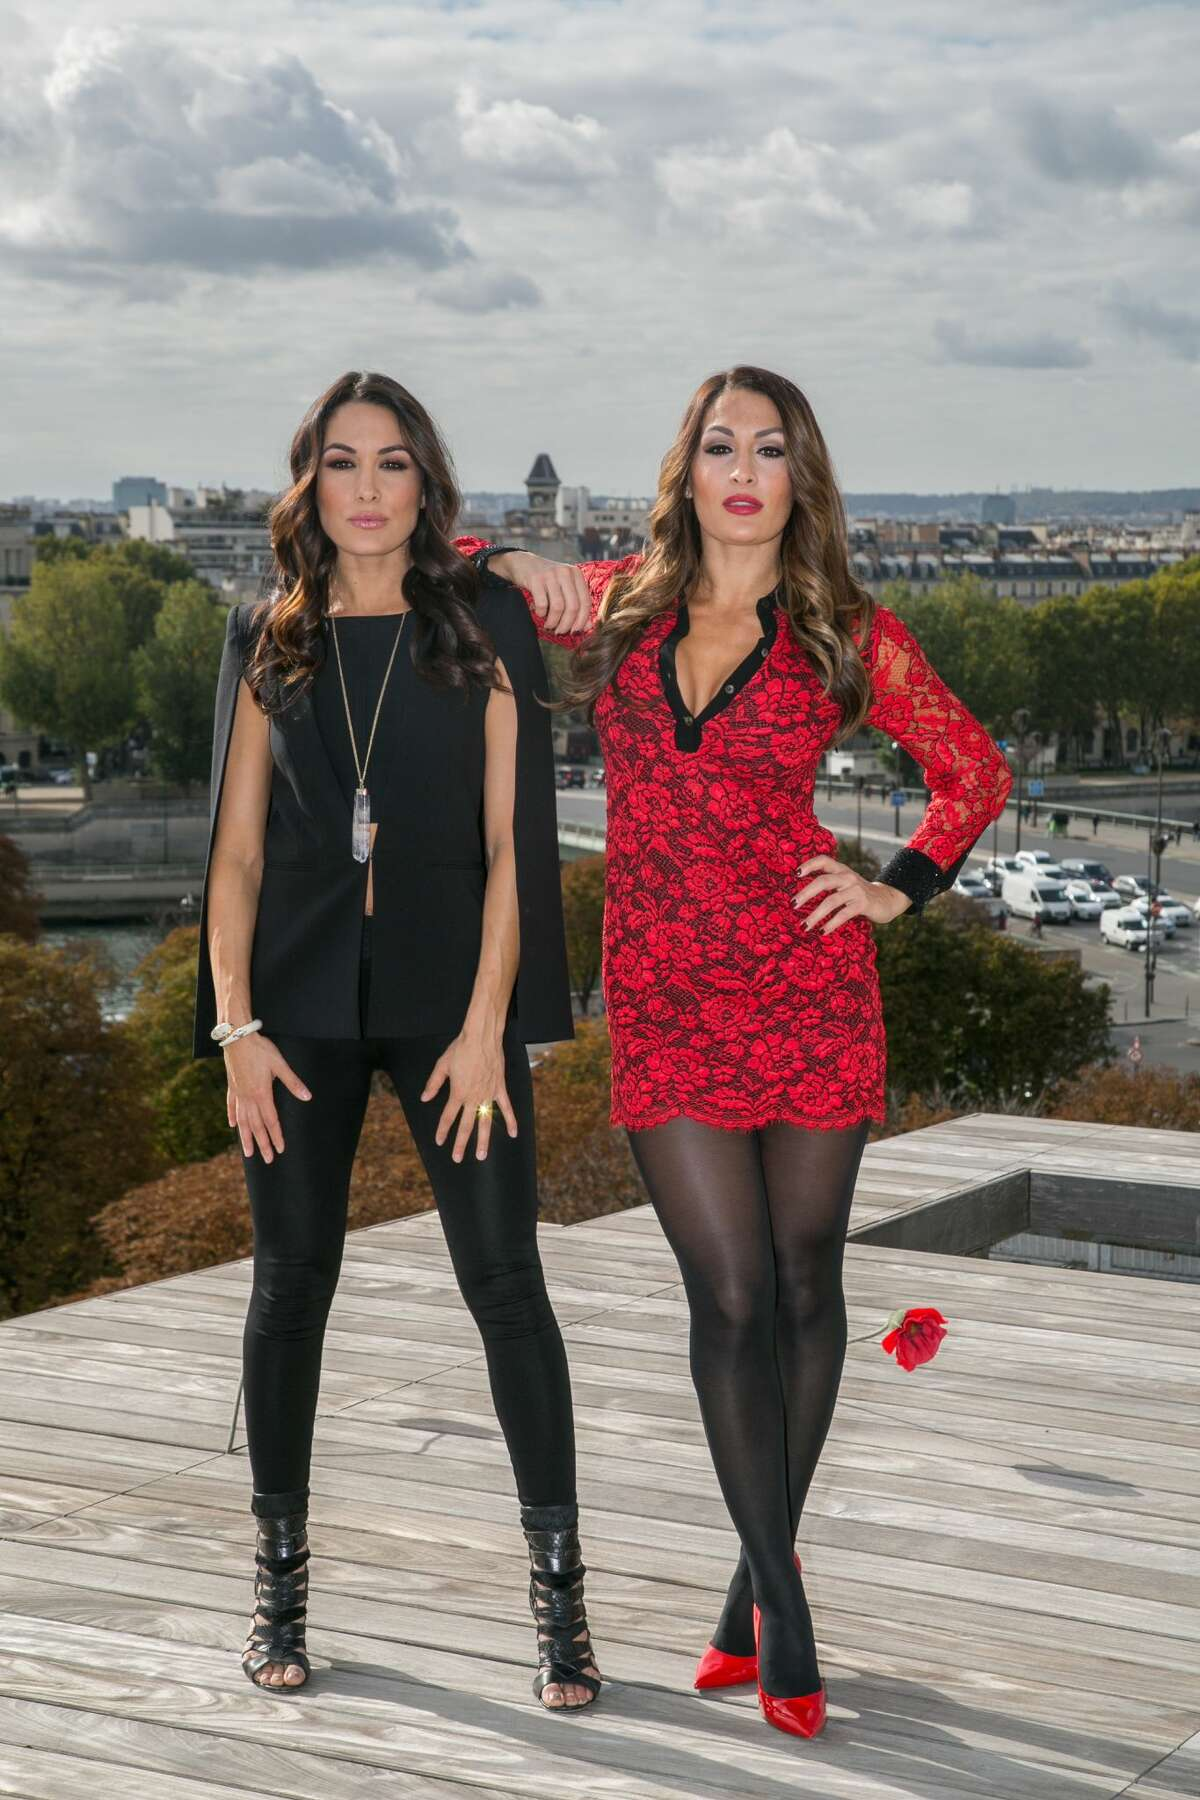 PARIS, FRANCE - OCTOBER 08: (L-R) WWE Divas Brie Bella and Nikki Bella attend a photocall to promote their show 'Total Divas' on October 8, 2015 in Paris, France. (Photo by Marc Piasecki/Getty Images)